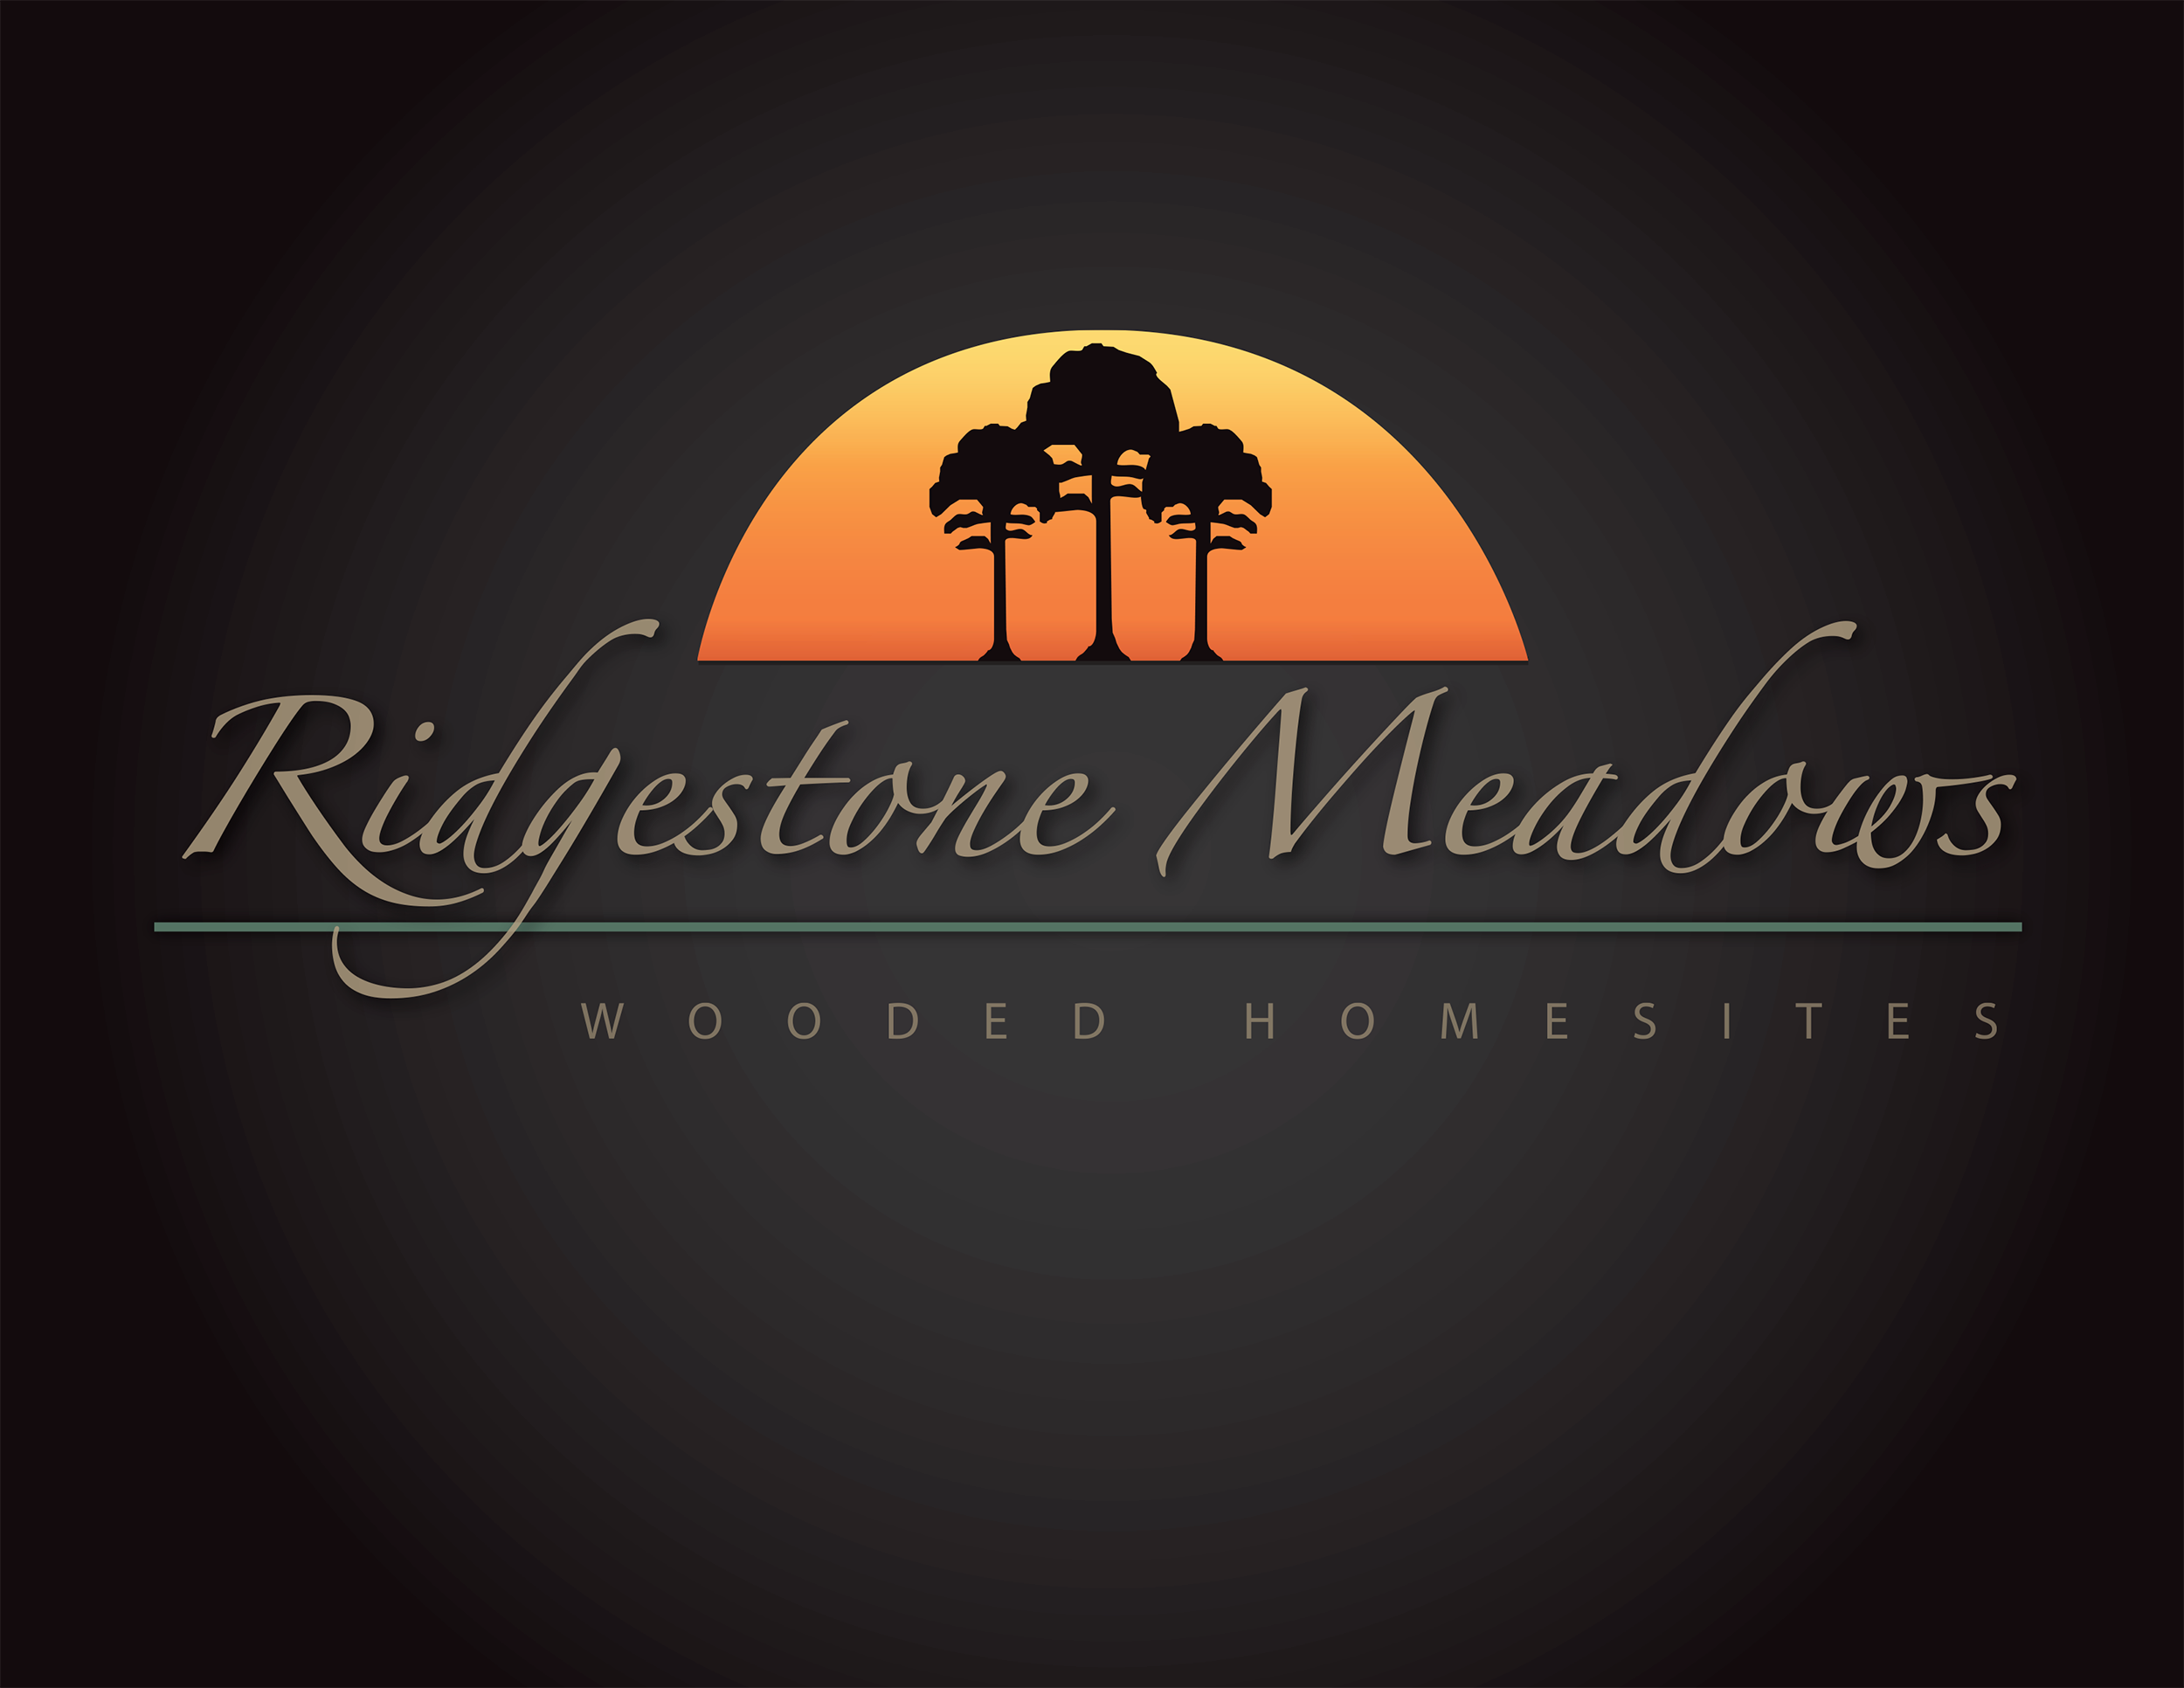 Ridgestone Meadows